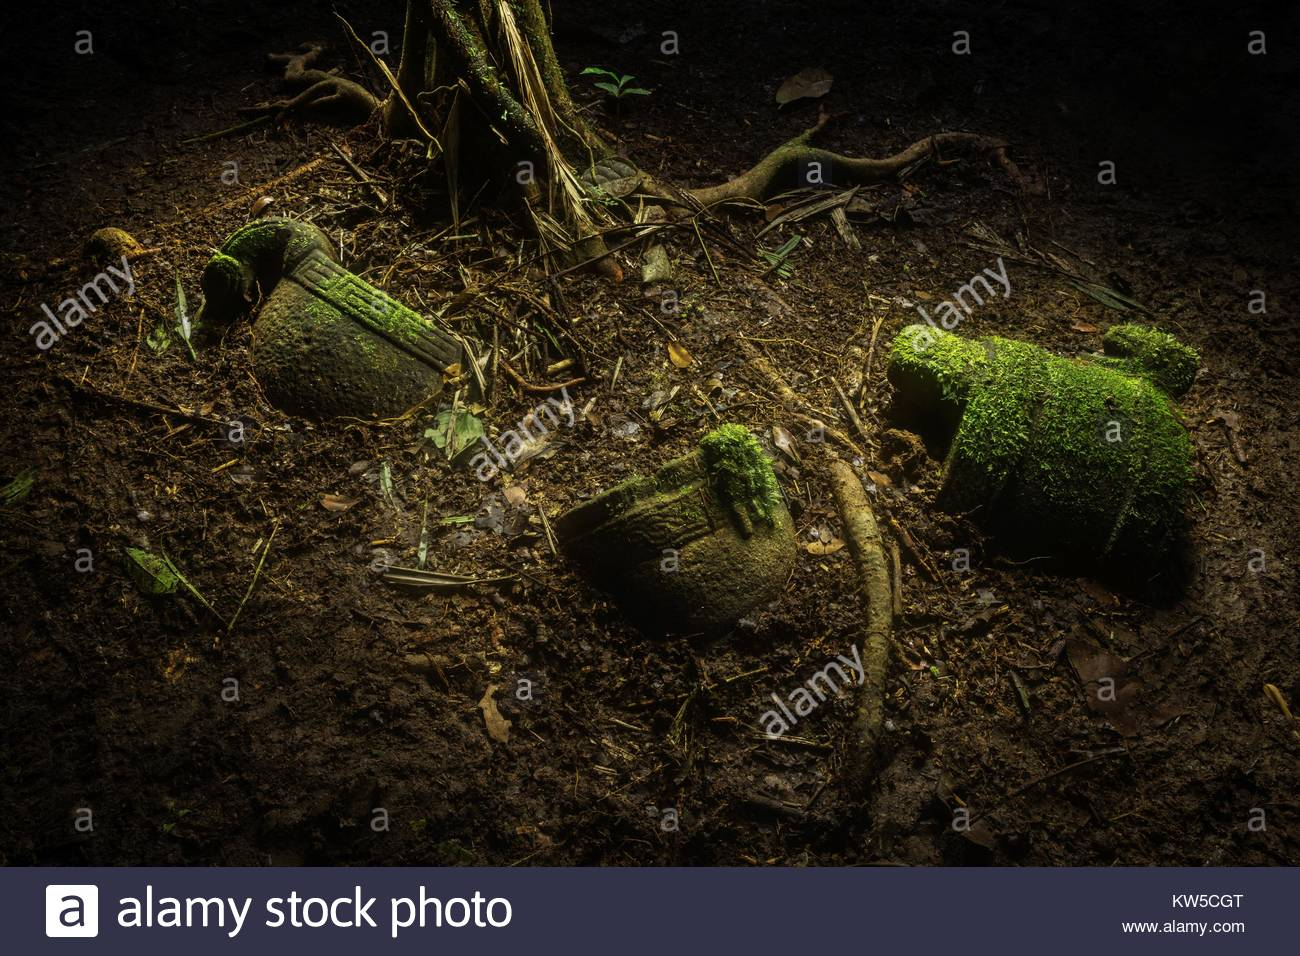 In the ruins of a pre-Colombian city, archaeologists discovered a cache of stone objects, possibly left as an offering. - Stock Image